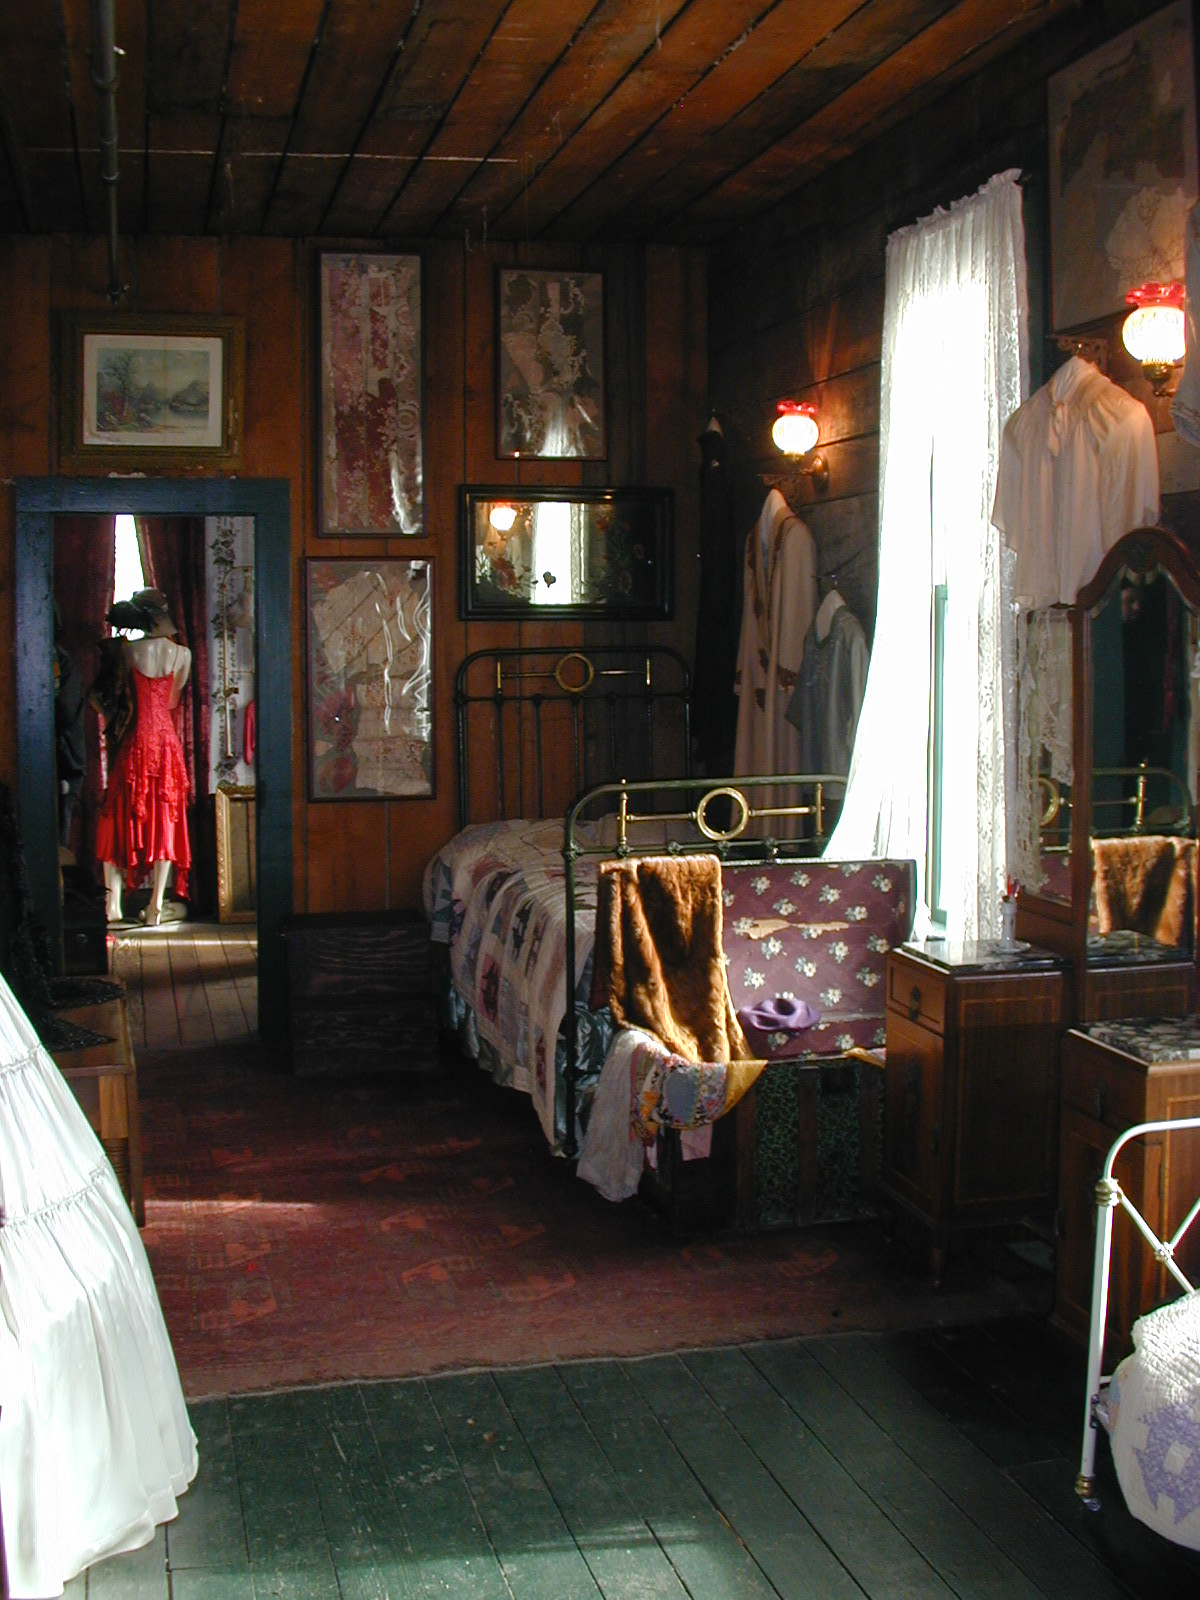 One of the rooms of the madams at the Red Onion Saloon